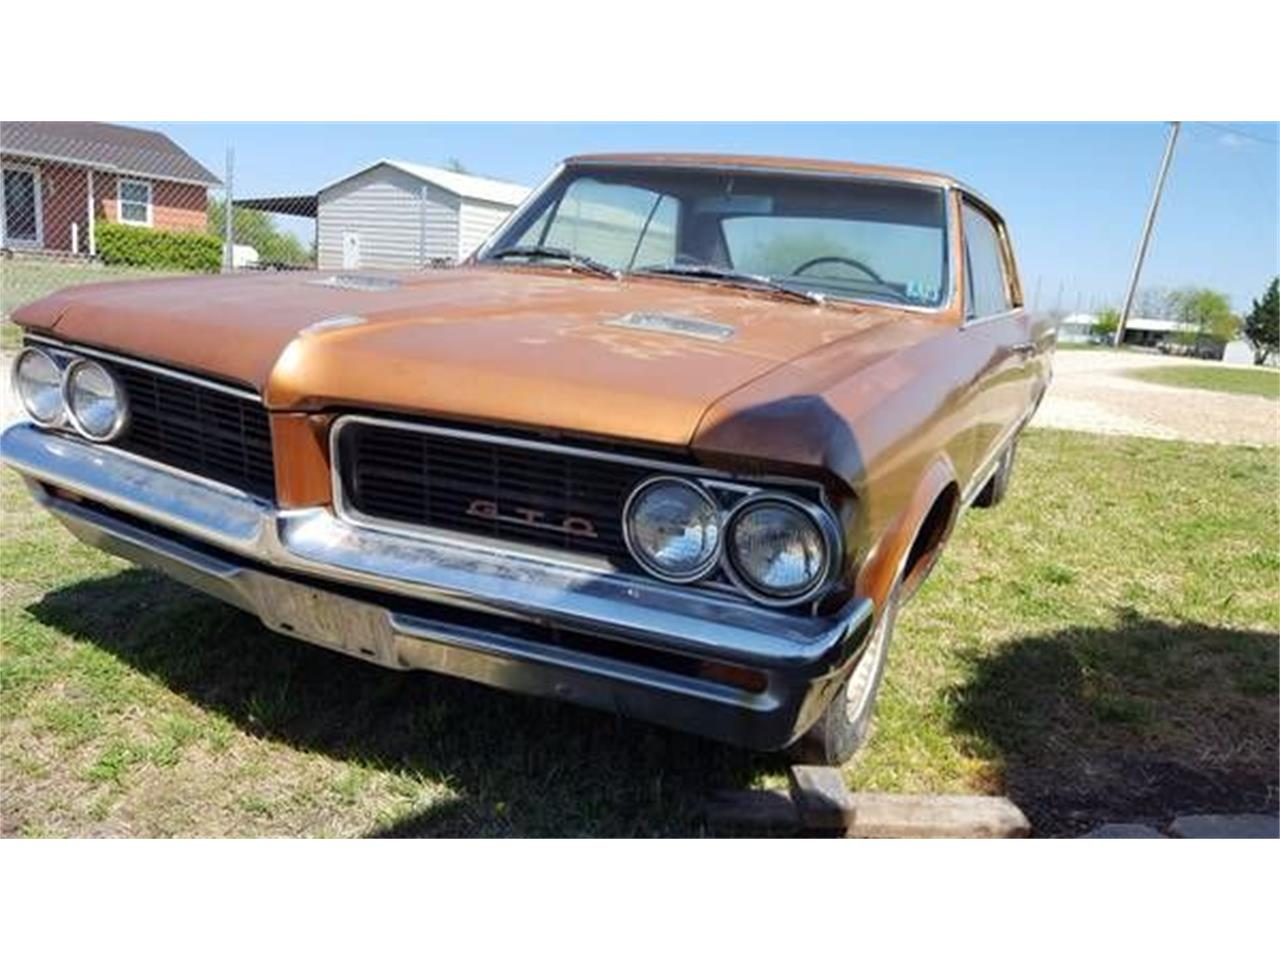 1964 Pontiac Gto For Sale Cc 1122427 1973 Project Car Large Picture Of 64 O22j